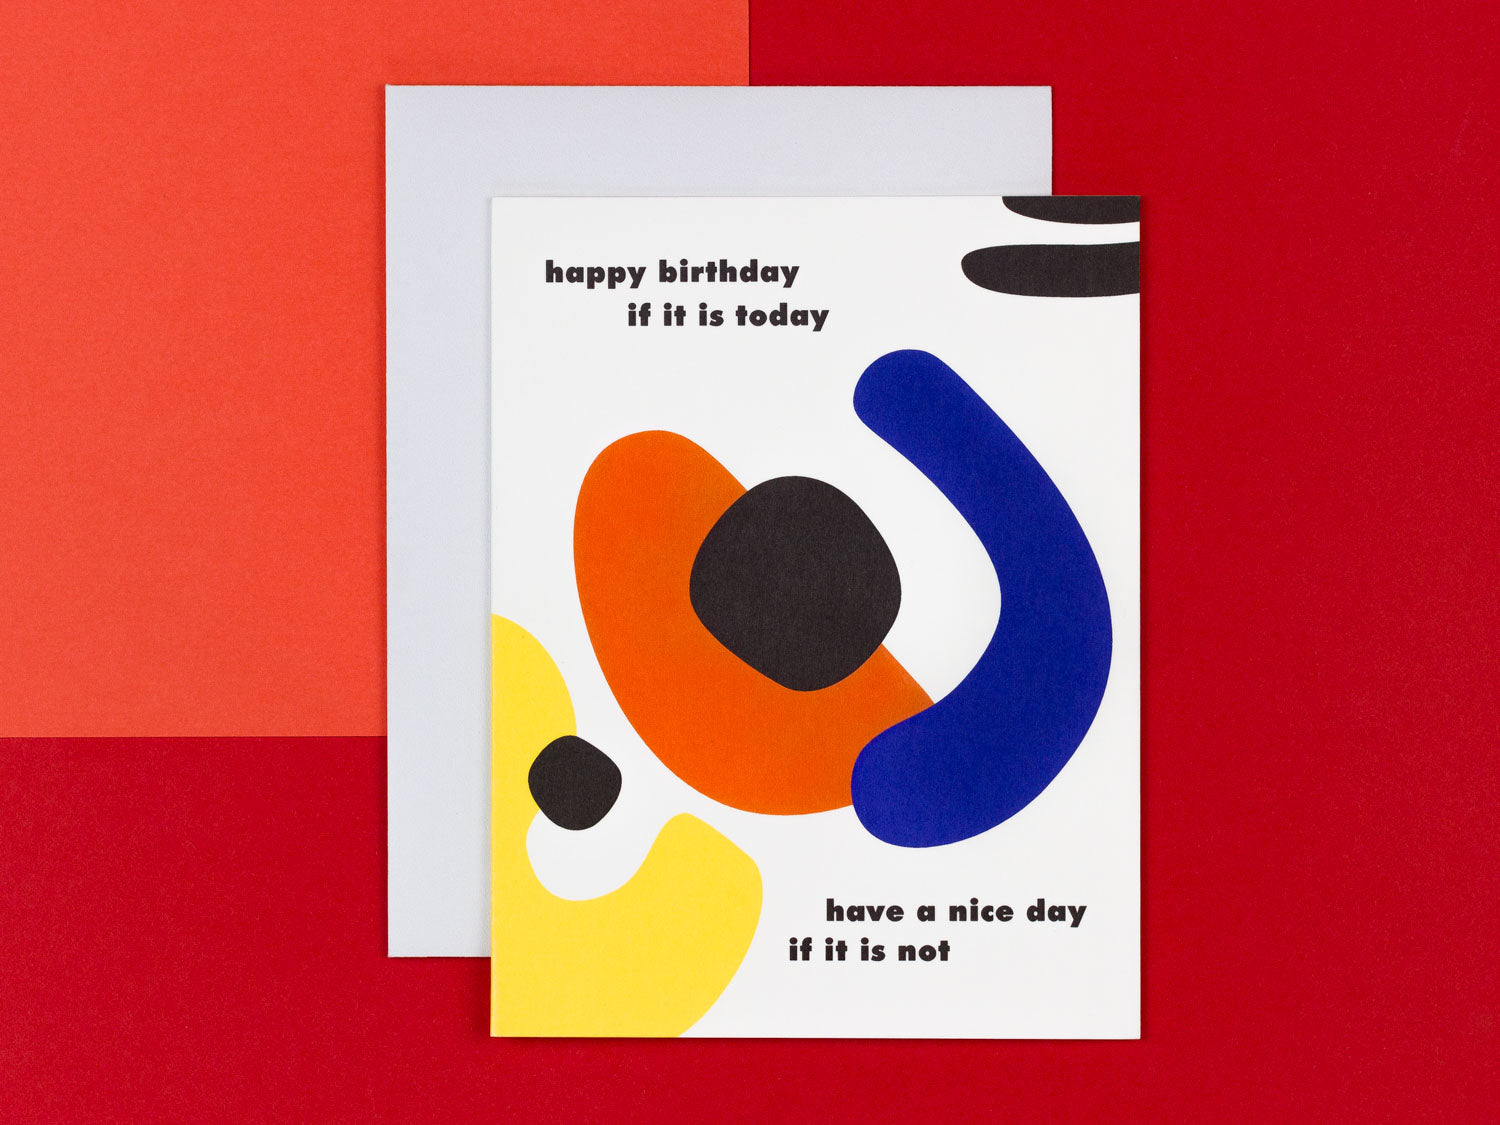 Happy Birthday If It Is Today Have A Nice Day If It Is Not. Funny birthday card with colorful abstract shapes by My Darlin' @mydarlin_bk